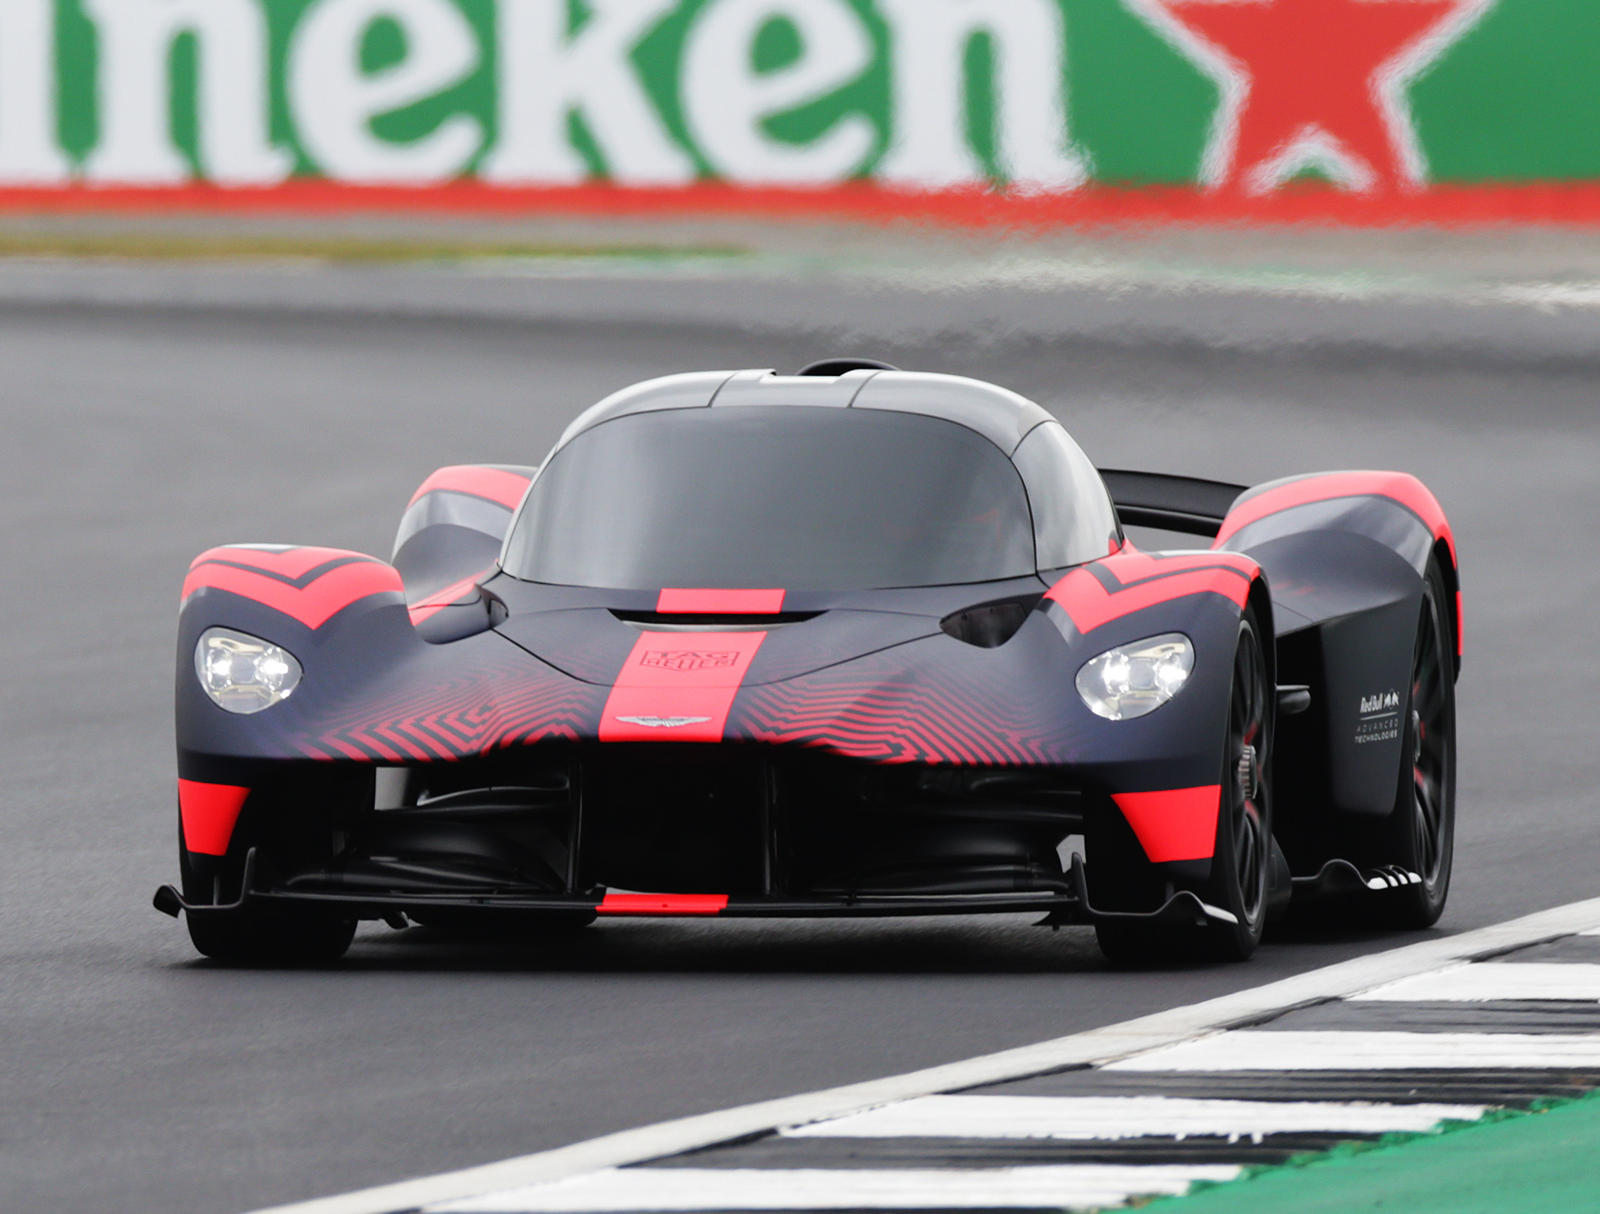 Range Rover Defender For Sale >> Aston Martin Valkyrie Makes Dynamic Debut at Silverstone